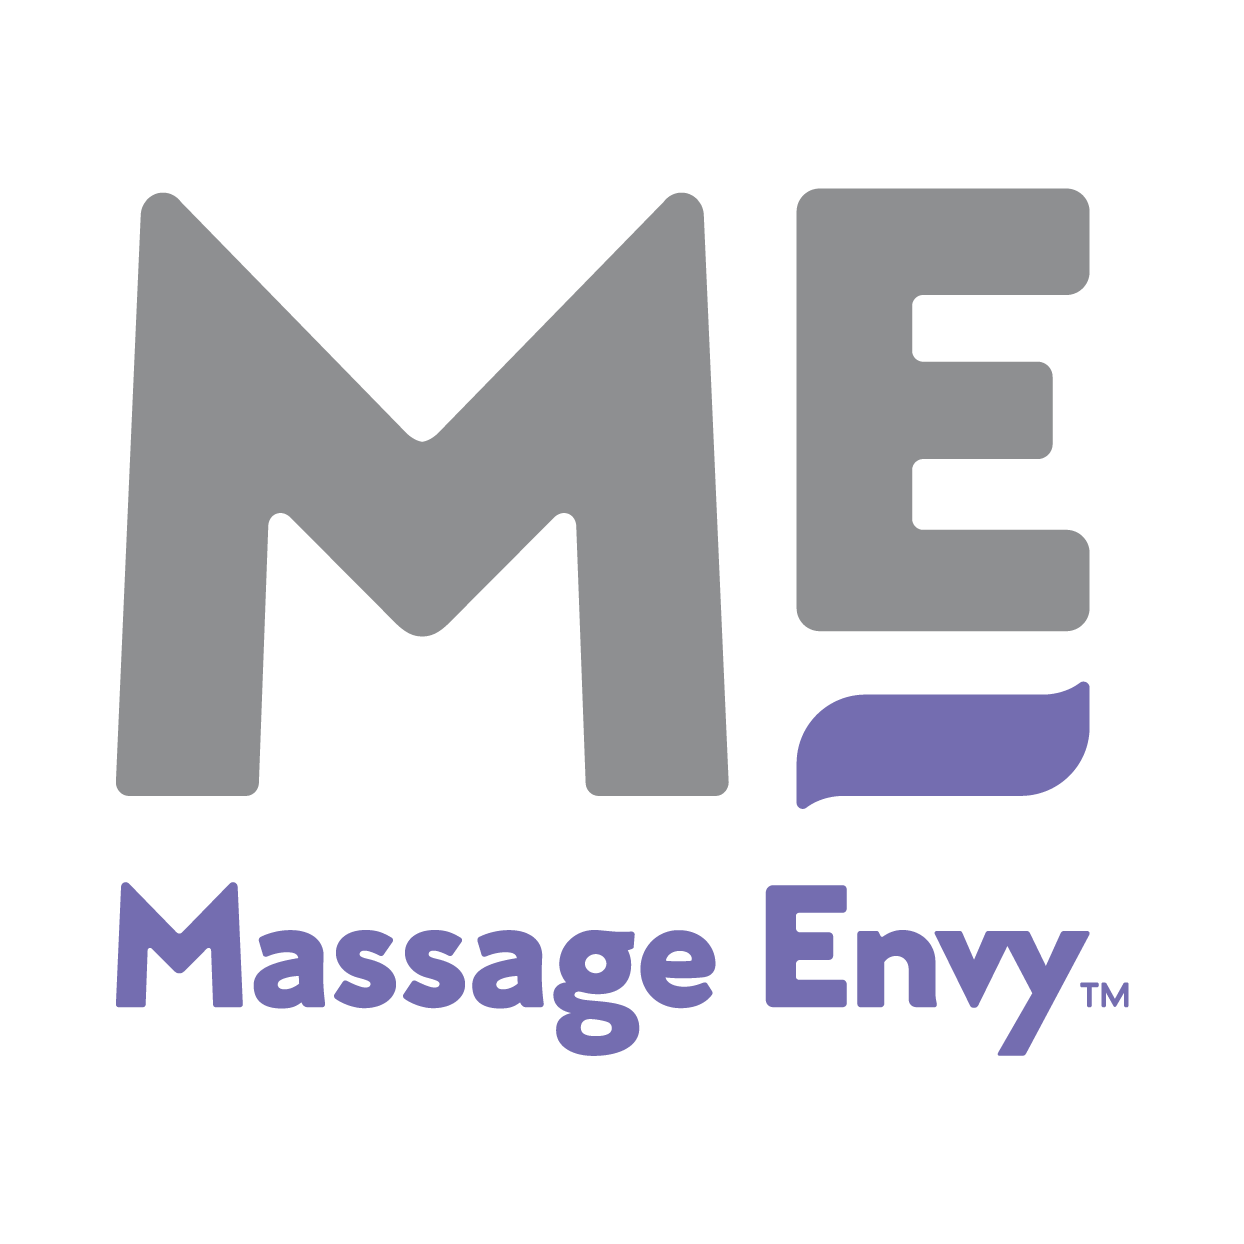 Spa in NE Bellevue 68123 Massage Envy - Twin Creek 3604 Twin Creek Dr Ste 105  (402)291-3000